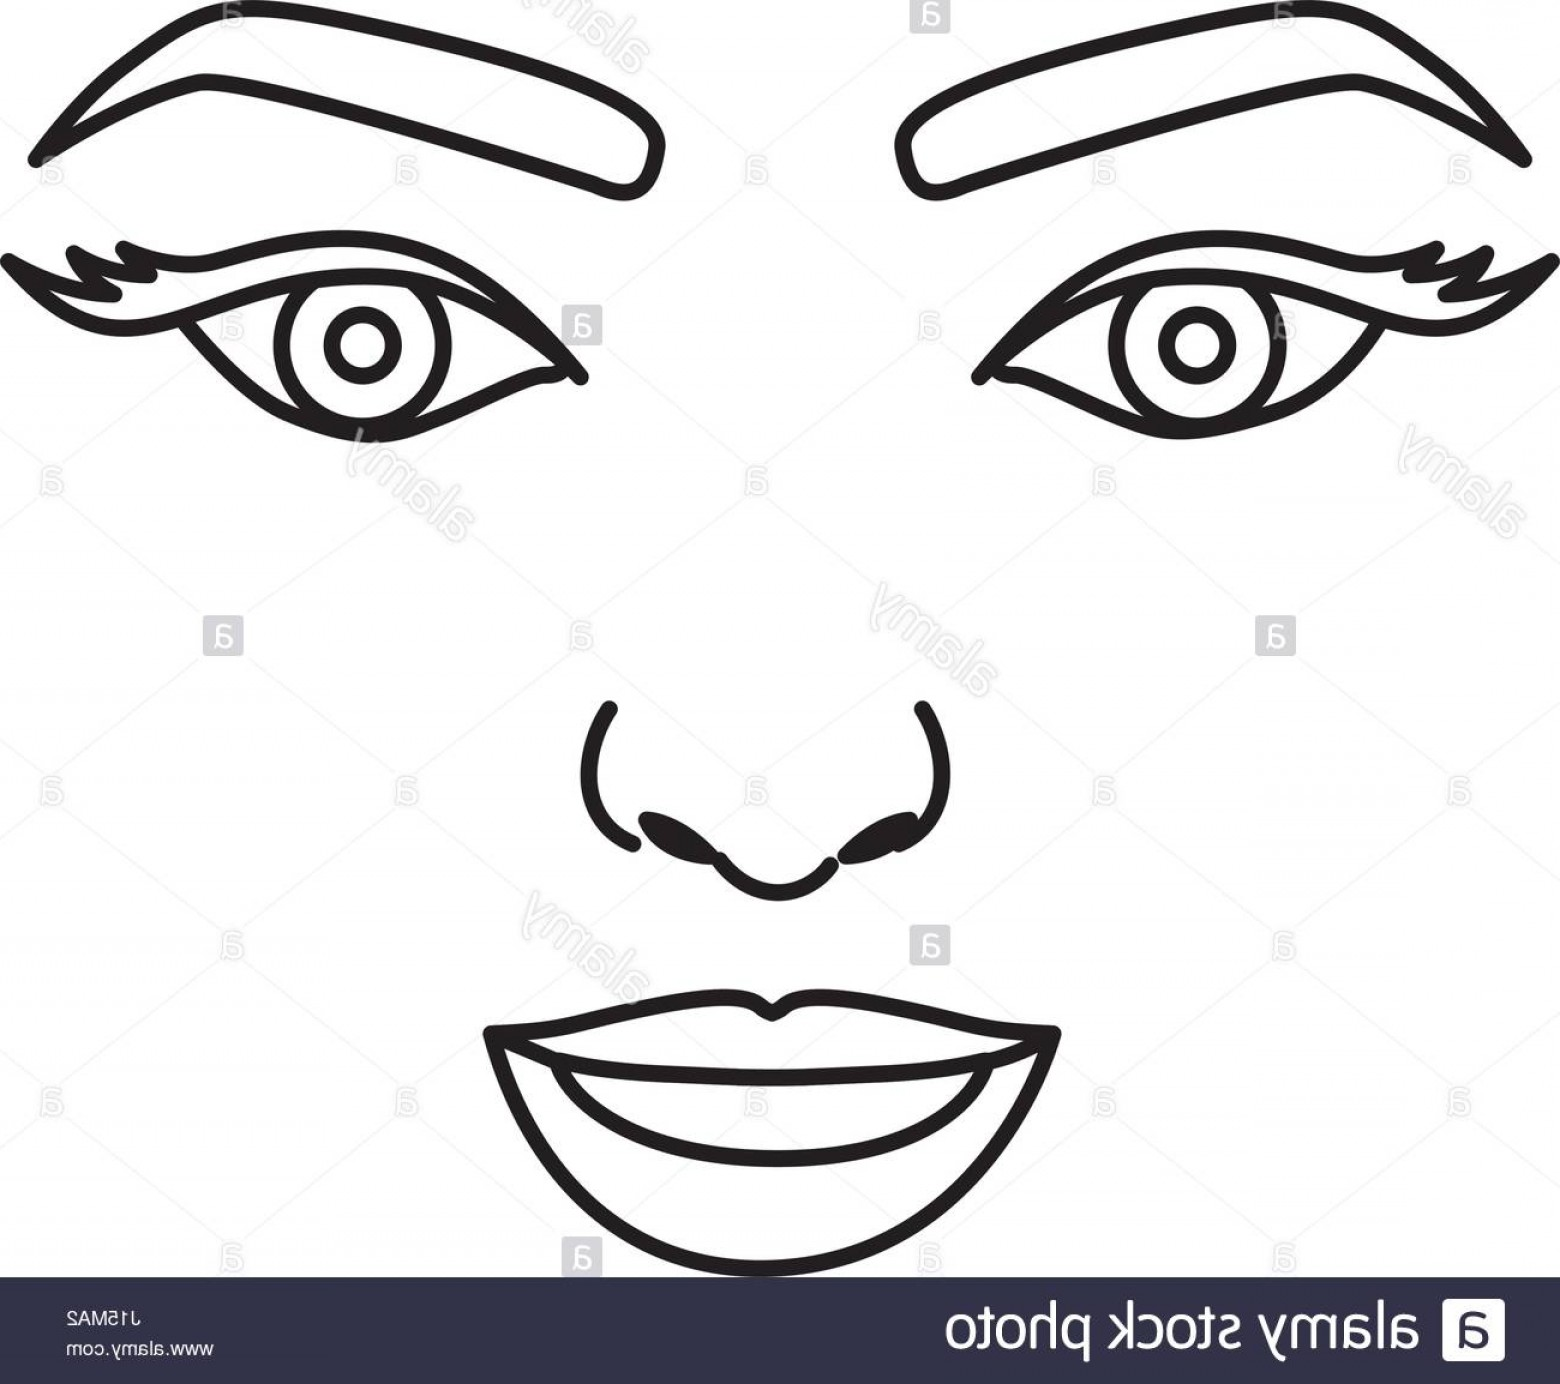 Woman Silhouette Vector Face Expression: Stock Photo Silhouette Drawing Of Woman Face With Open Eyes And Smiling